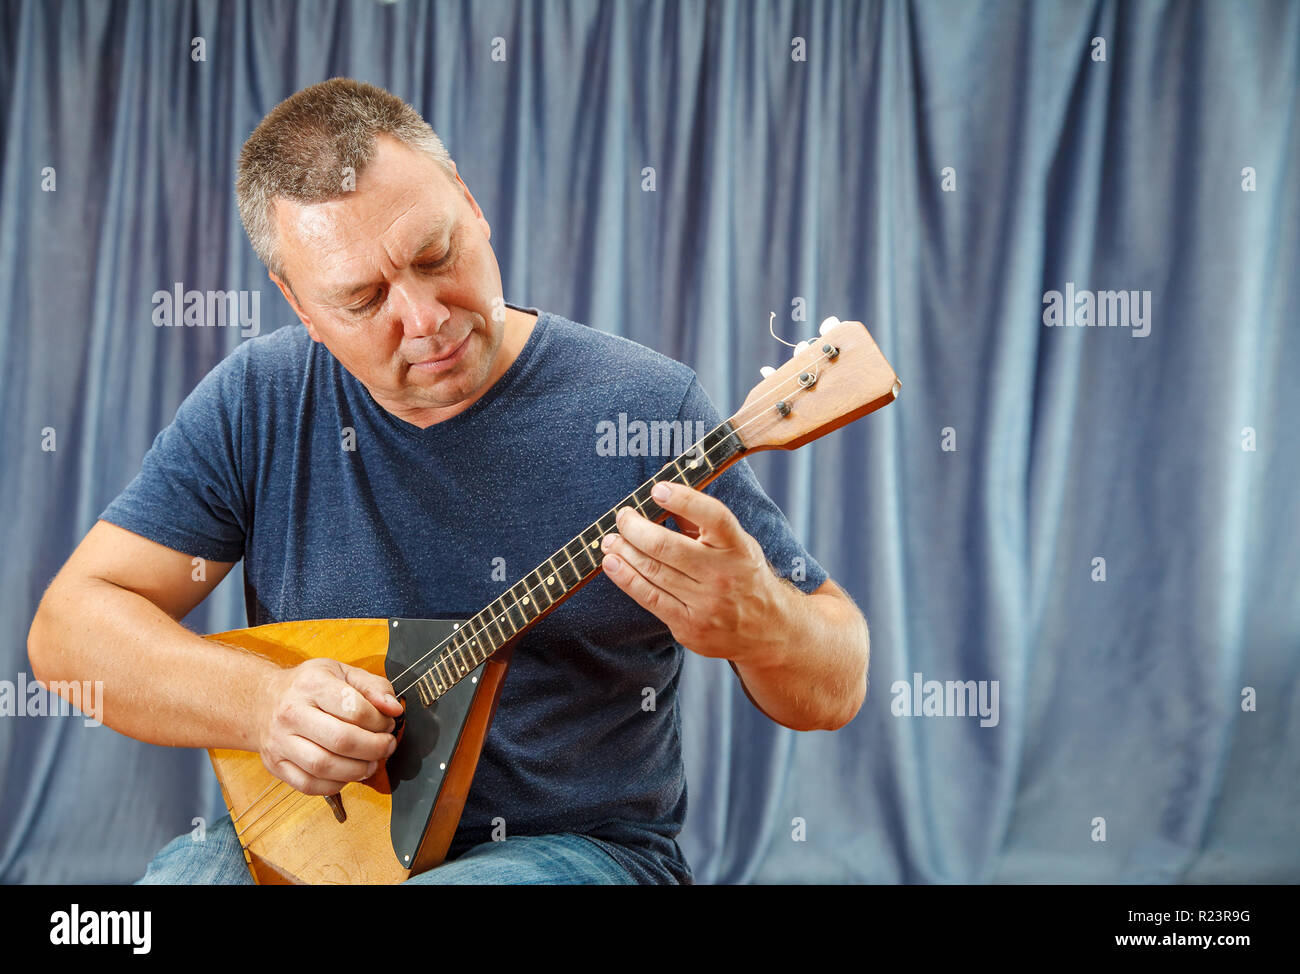 elderly man playing the balalaika indoor with bright daylight - Stock Image